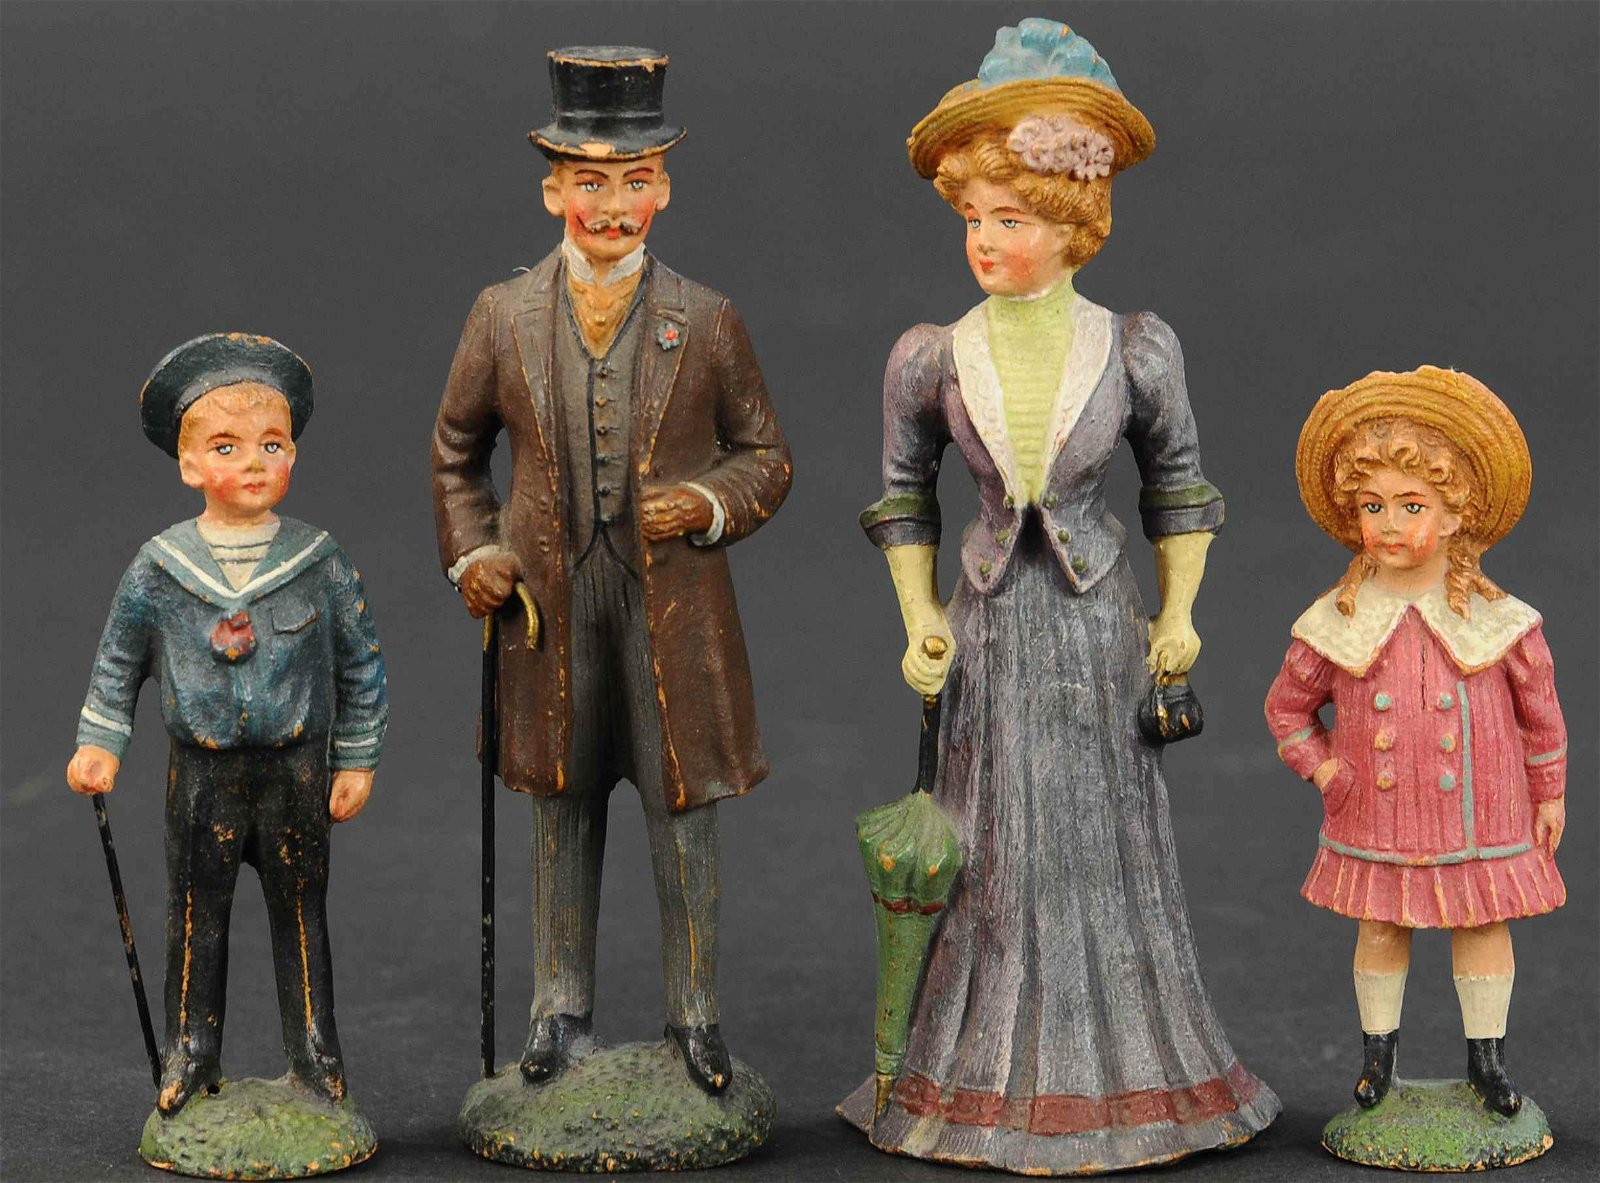 PFEIFFER 1914 EDWARDIAN FIGURES